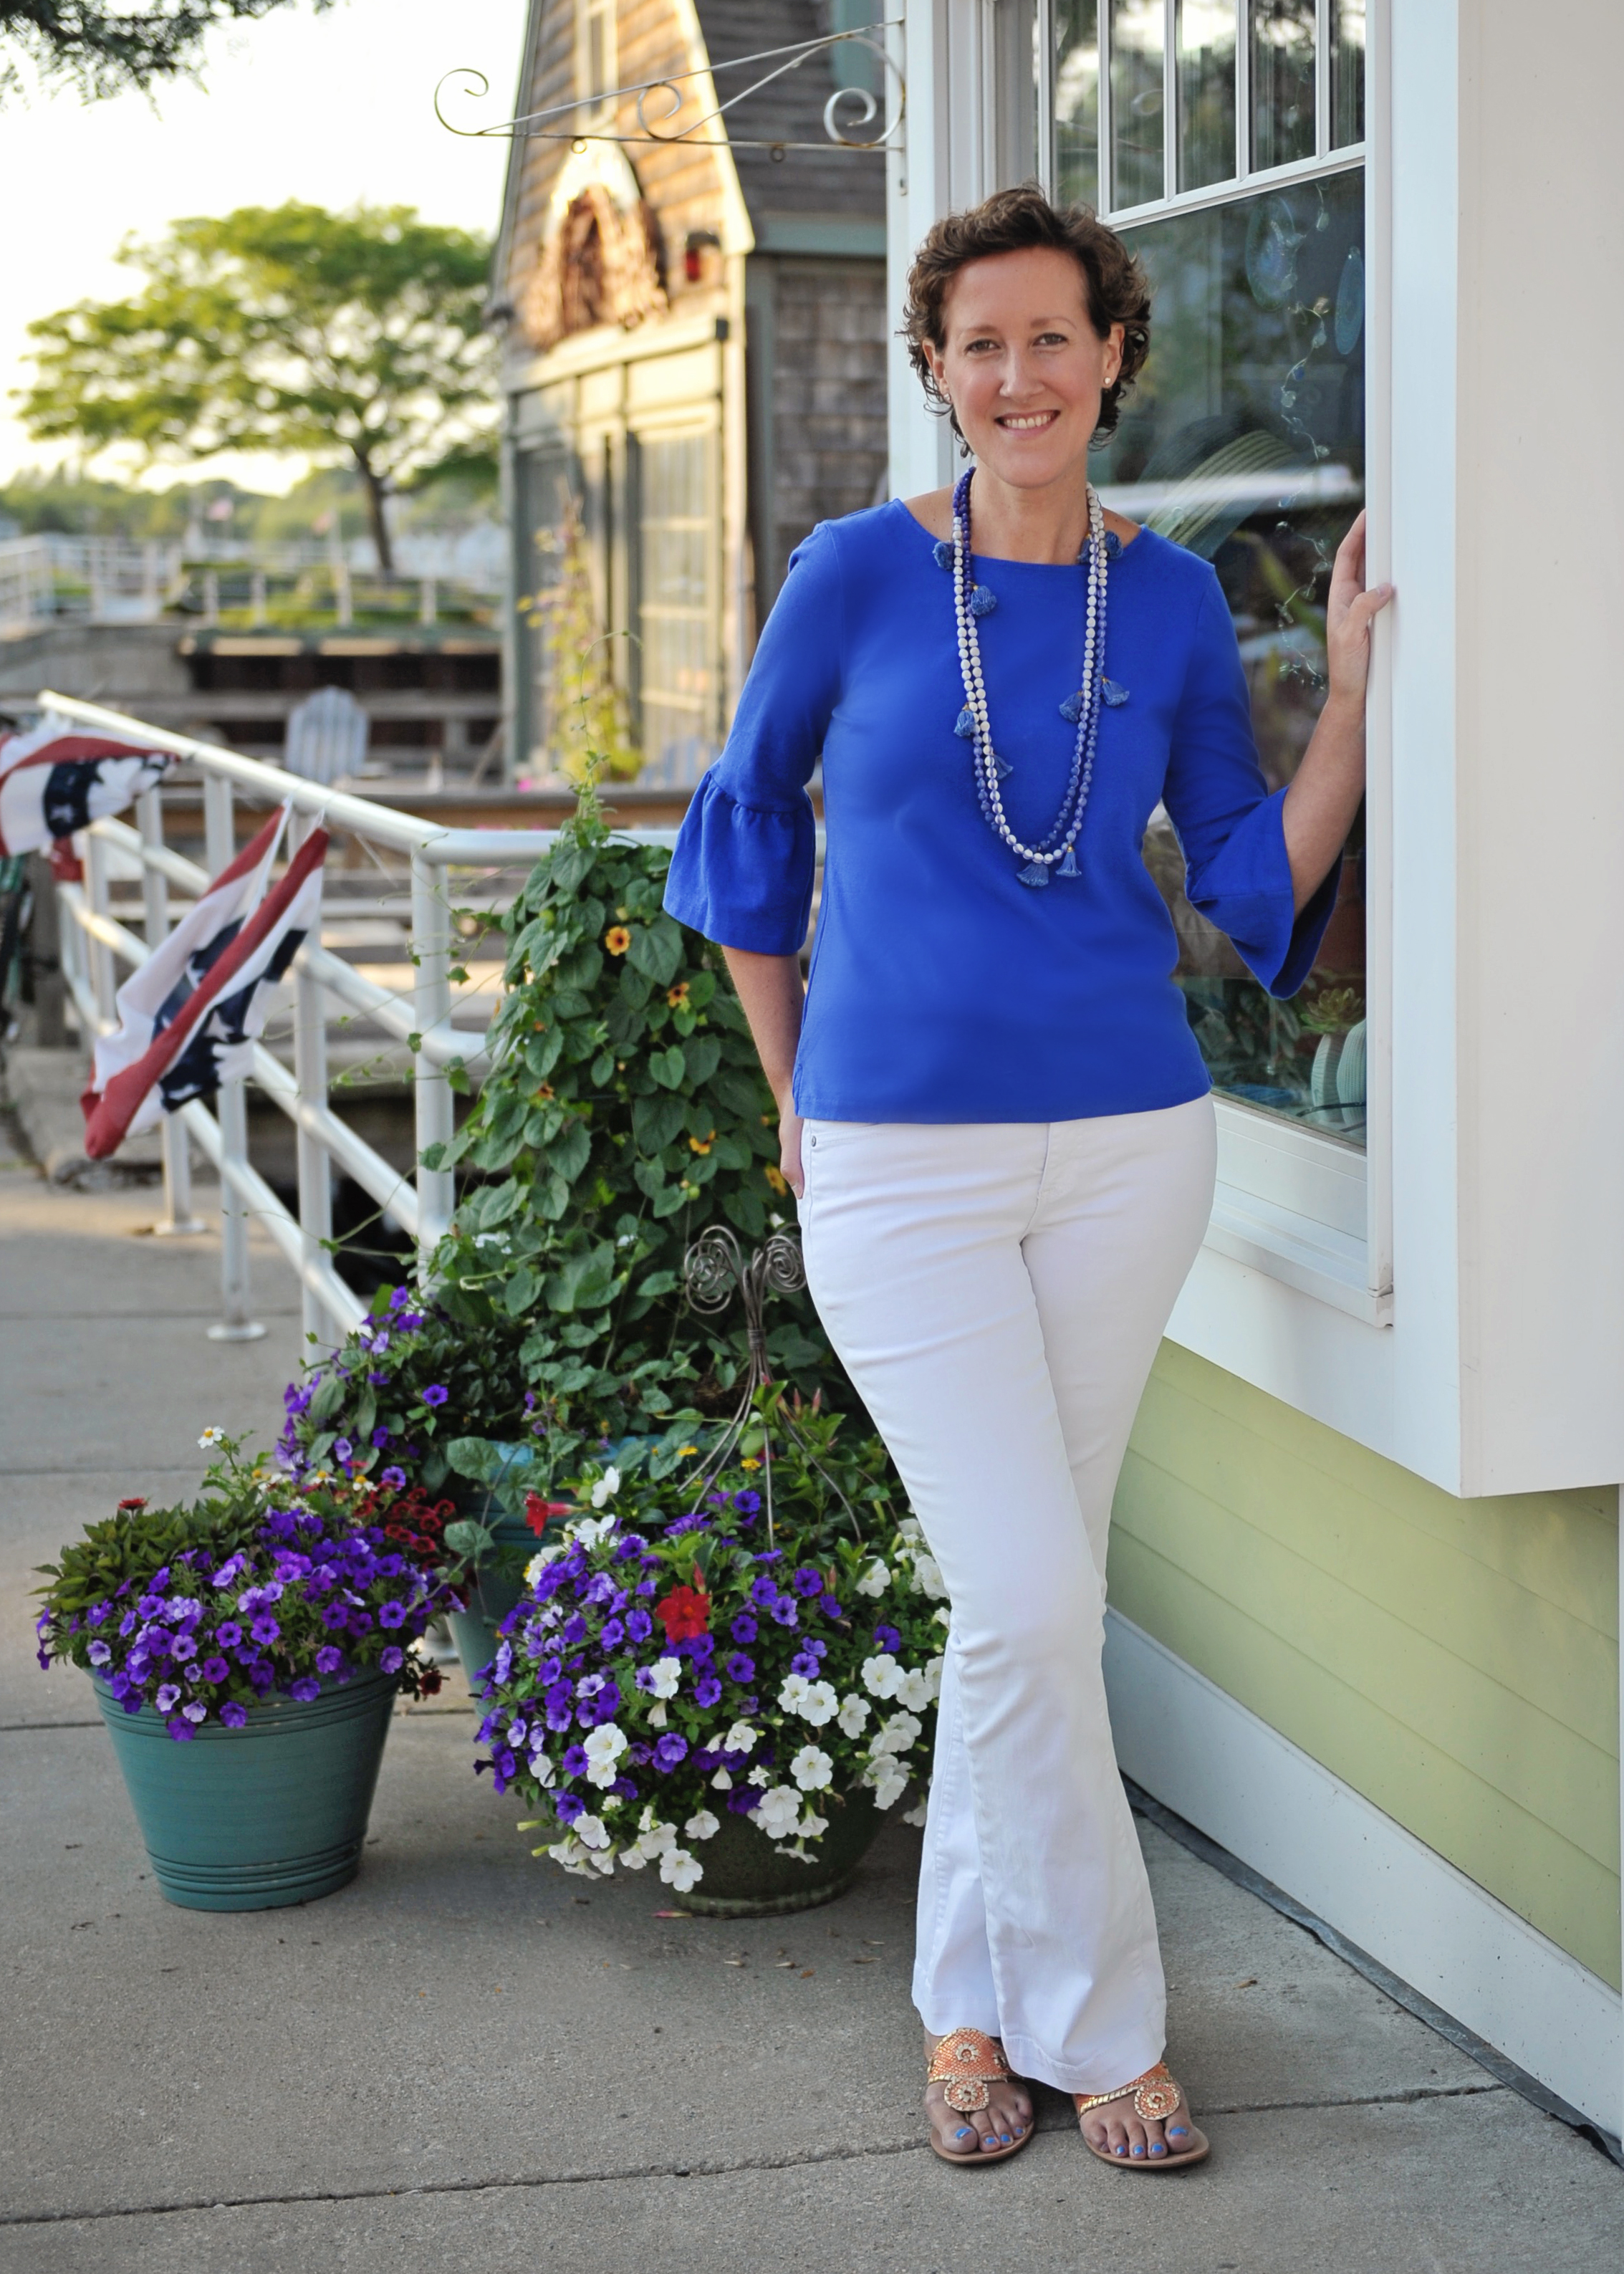 Artist Becky O'Toole in Scituate MA. She discusses her creative process in this interview #interview #creativity #coastal #seascapes